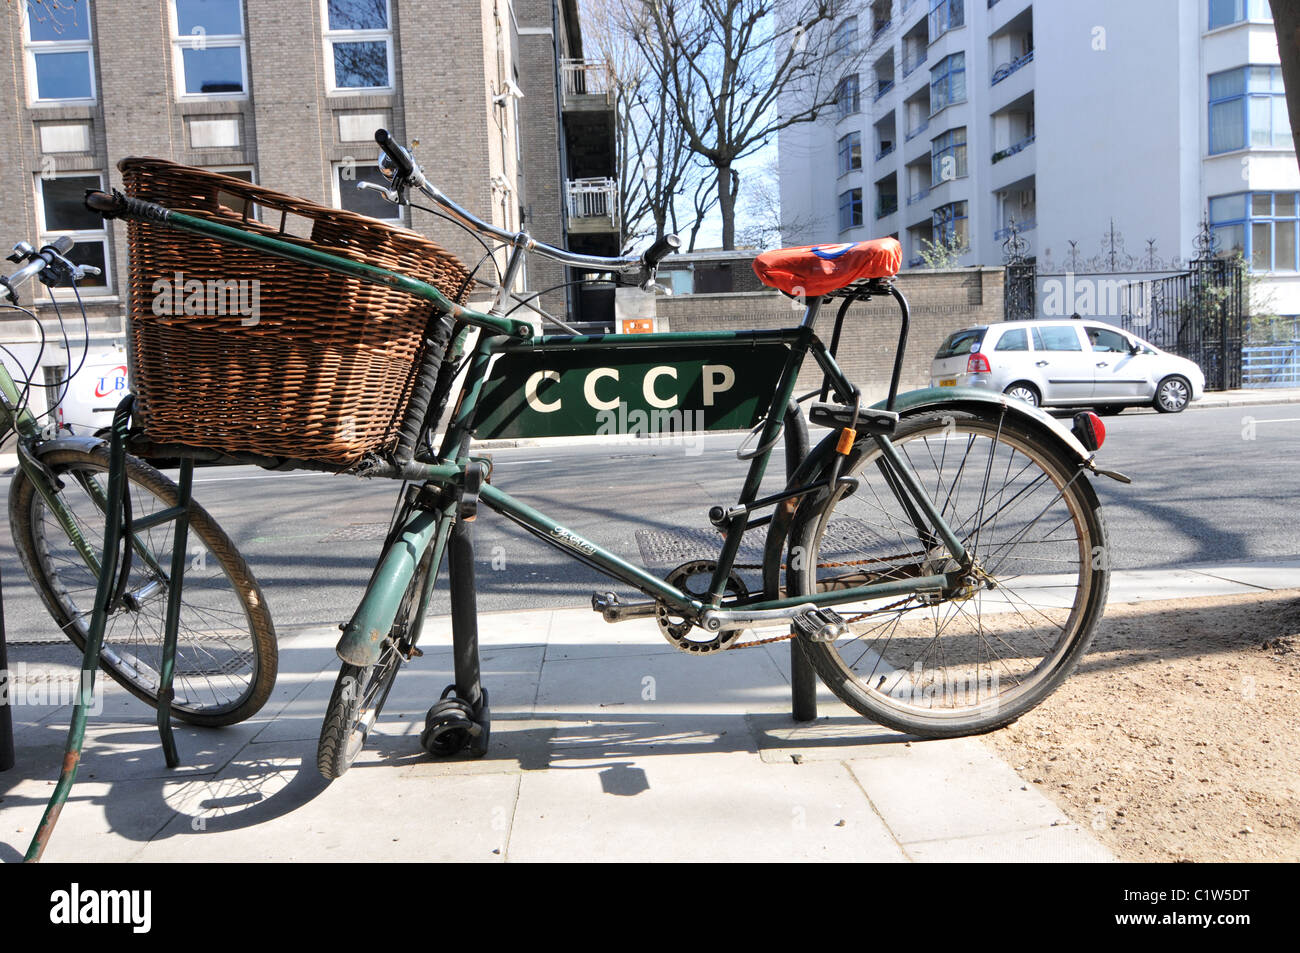 Delivery bike bicycle basket old fashioned CCCP - Stock Image